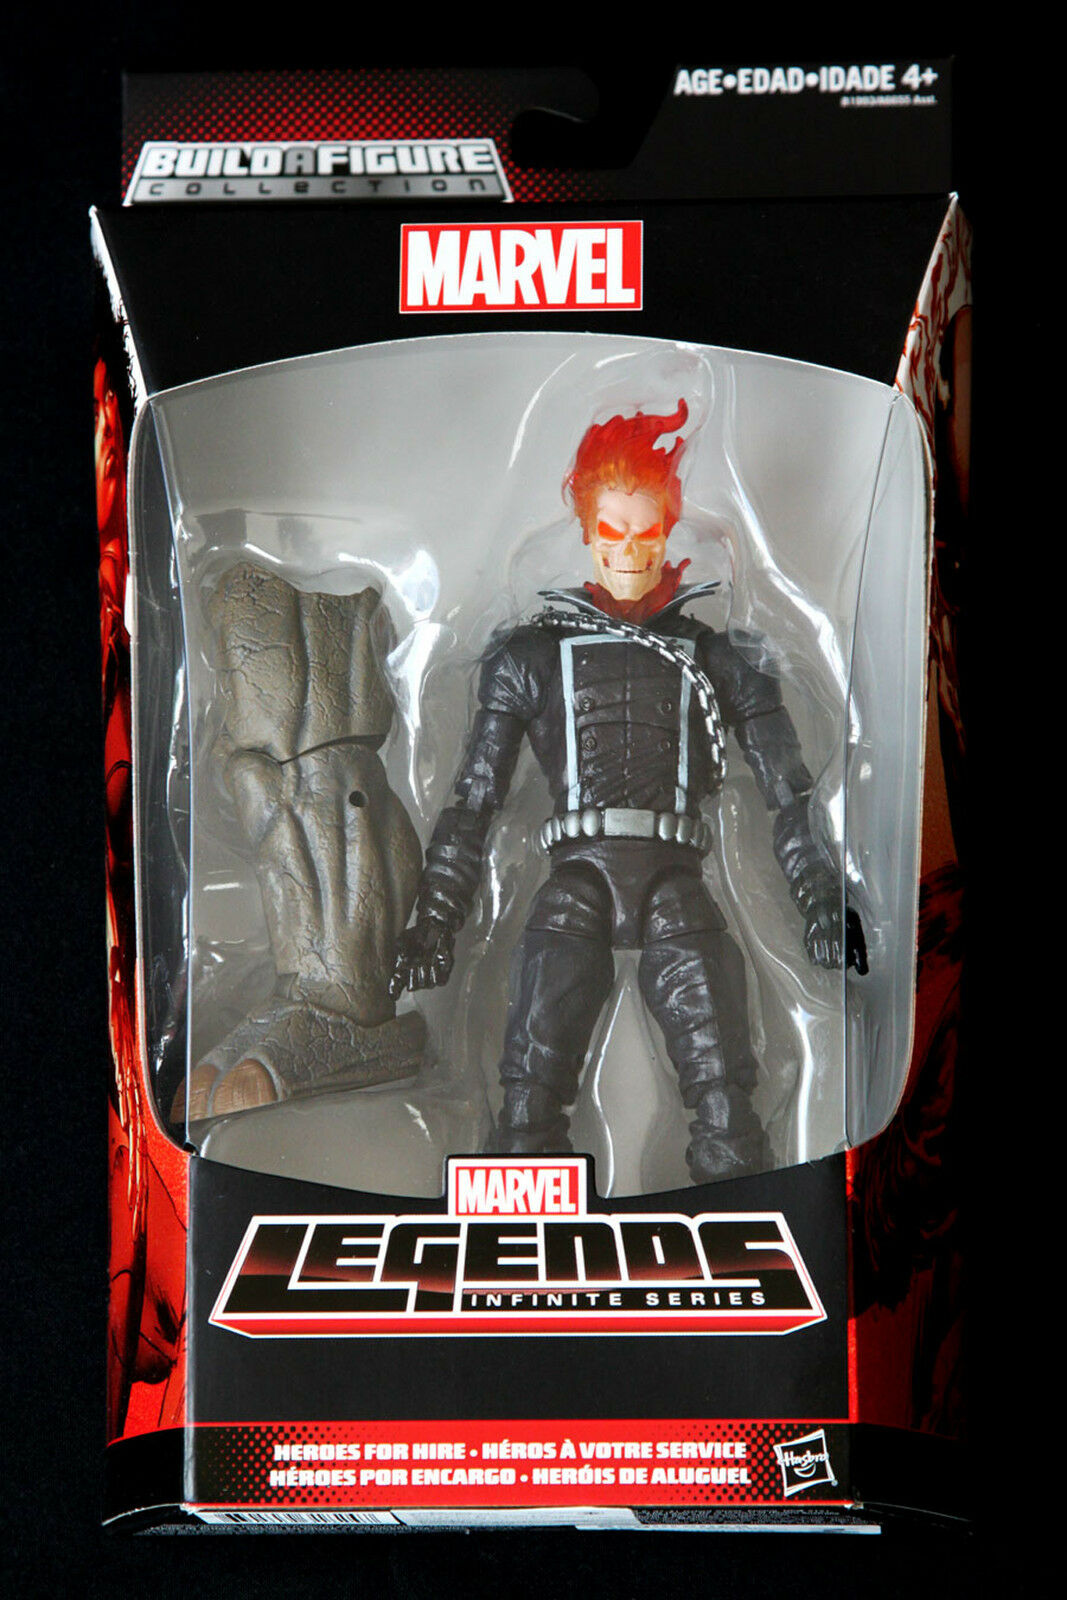 GHOST RIDER MARVEL LEGENDS INFINITE SERIES SPIDER-MAN HASBRO 6  ACTION FIGURE